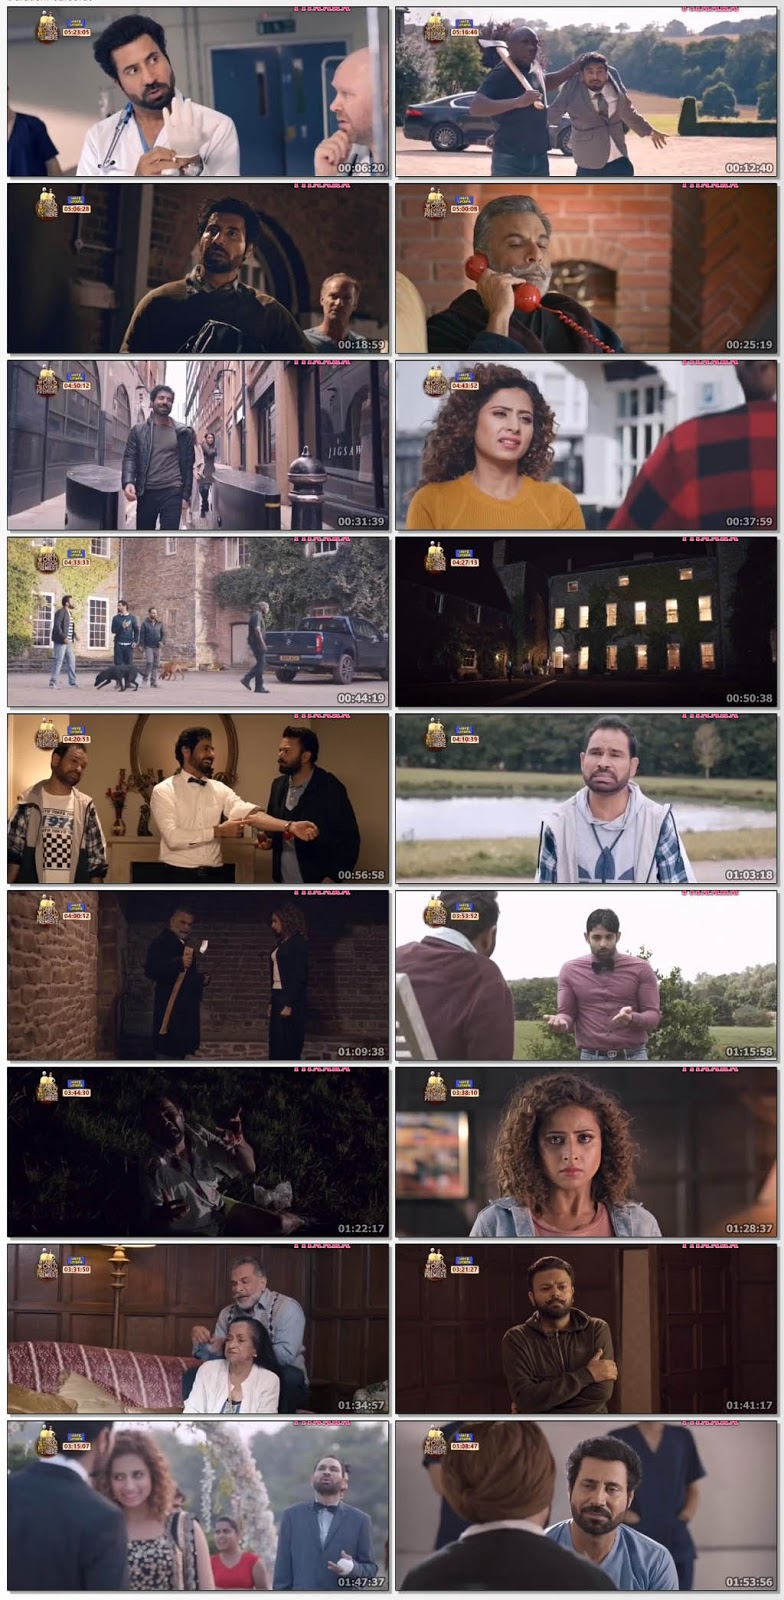 Jhalle full movie download okjatt